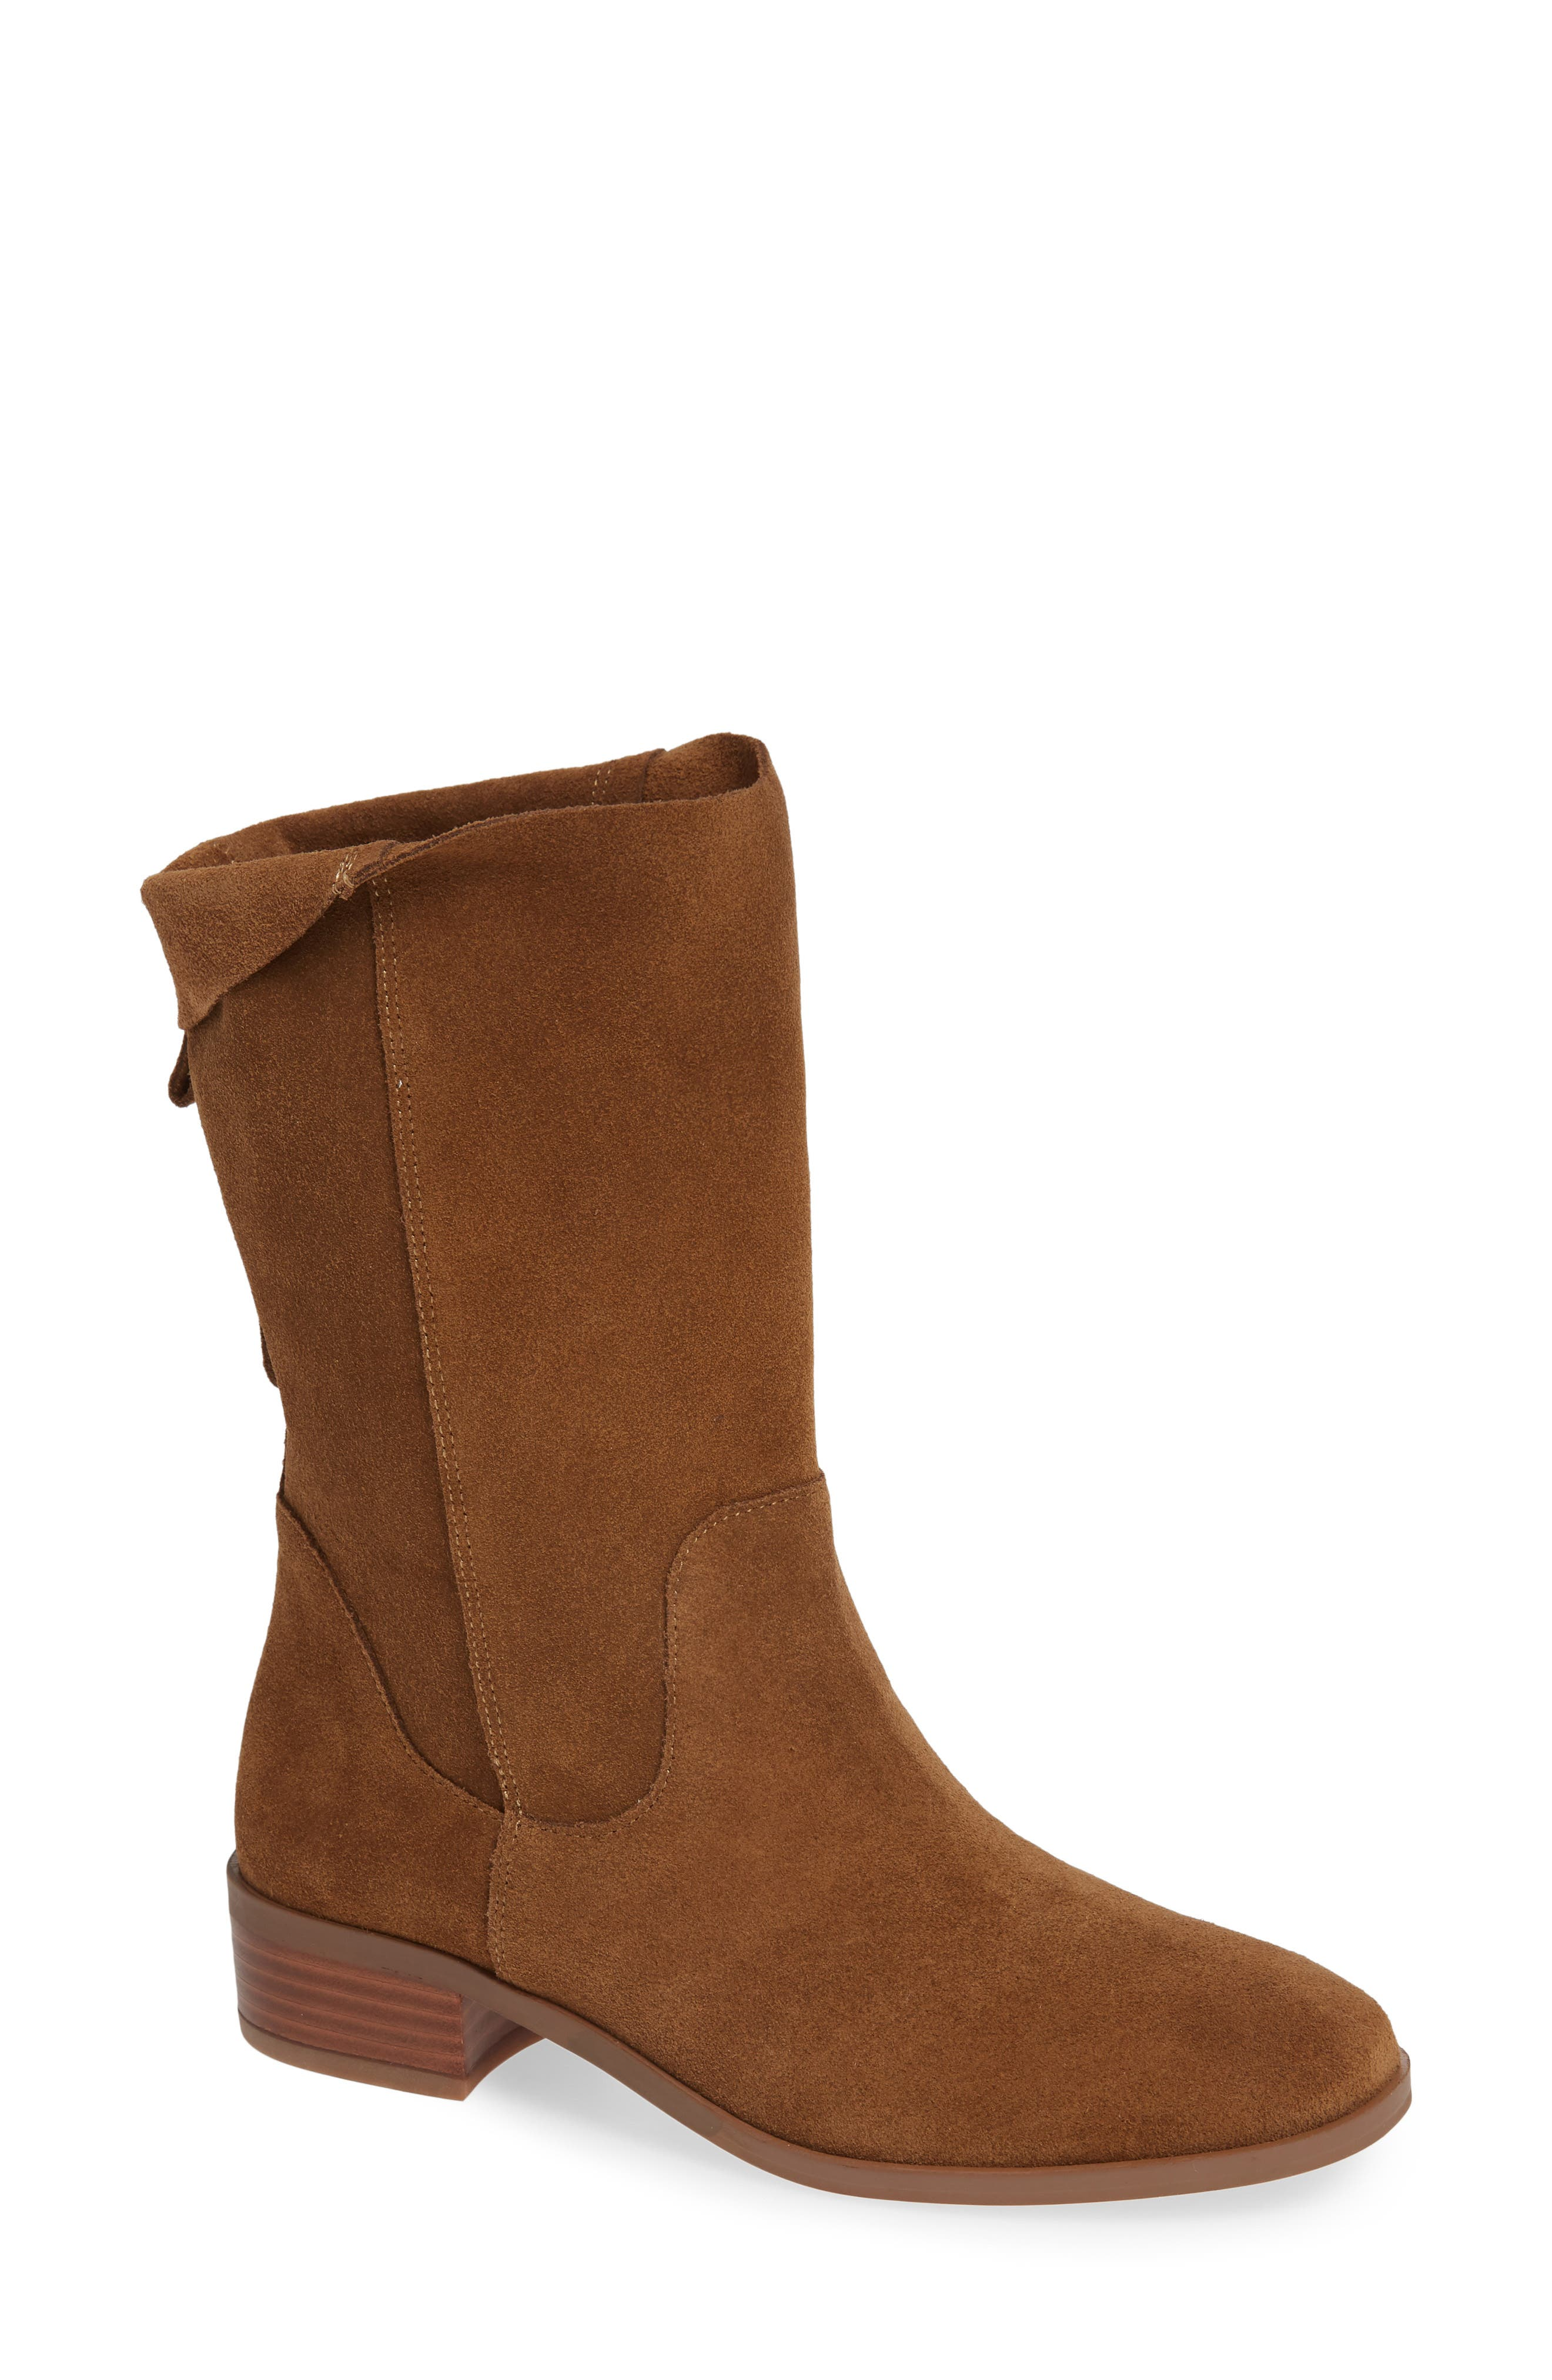 f57a177d9d41 Women s Sole Society Booties   Ankle Boots